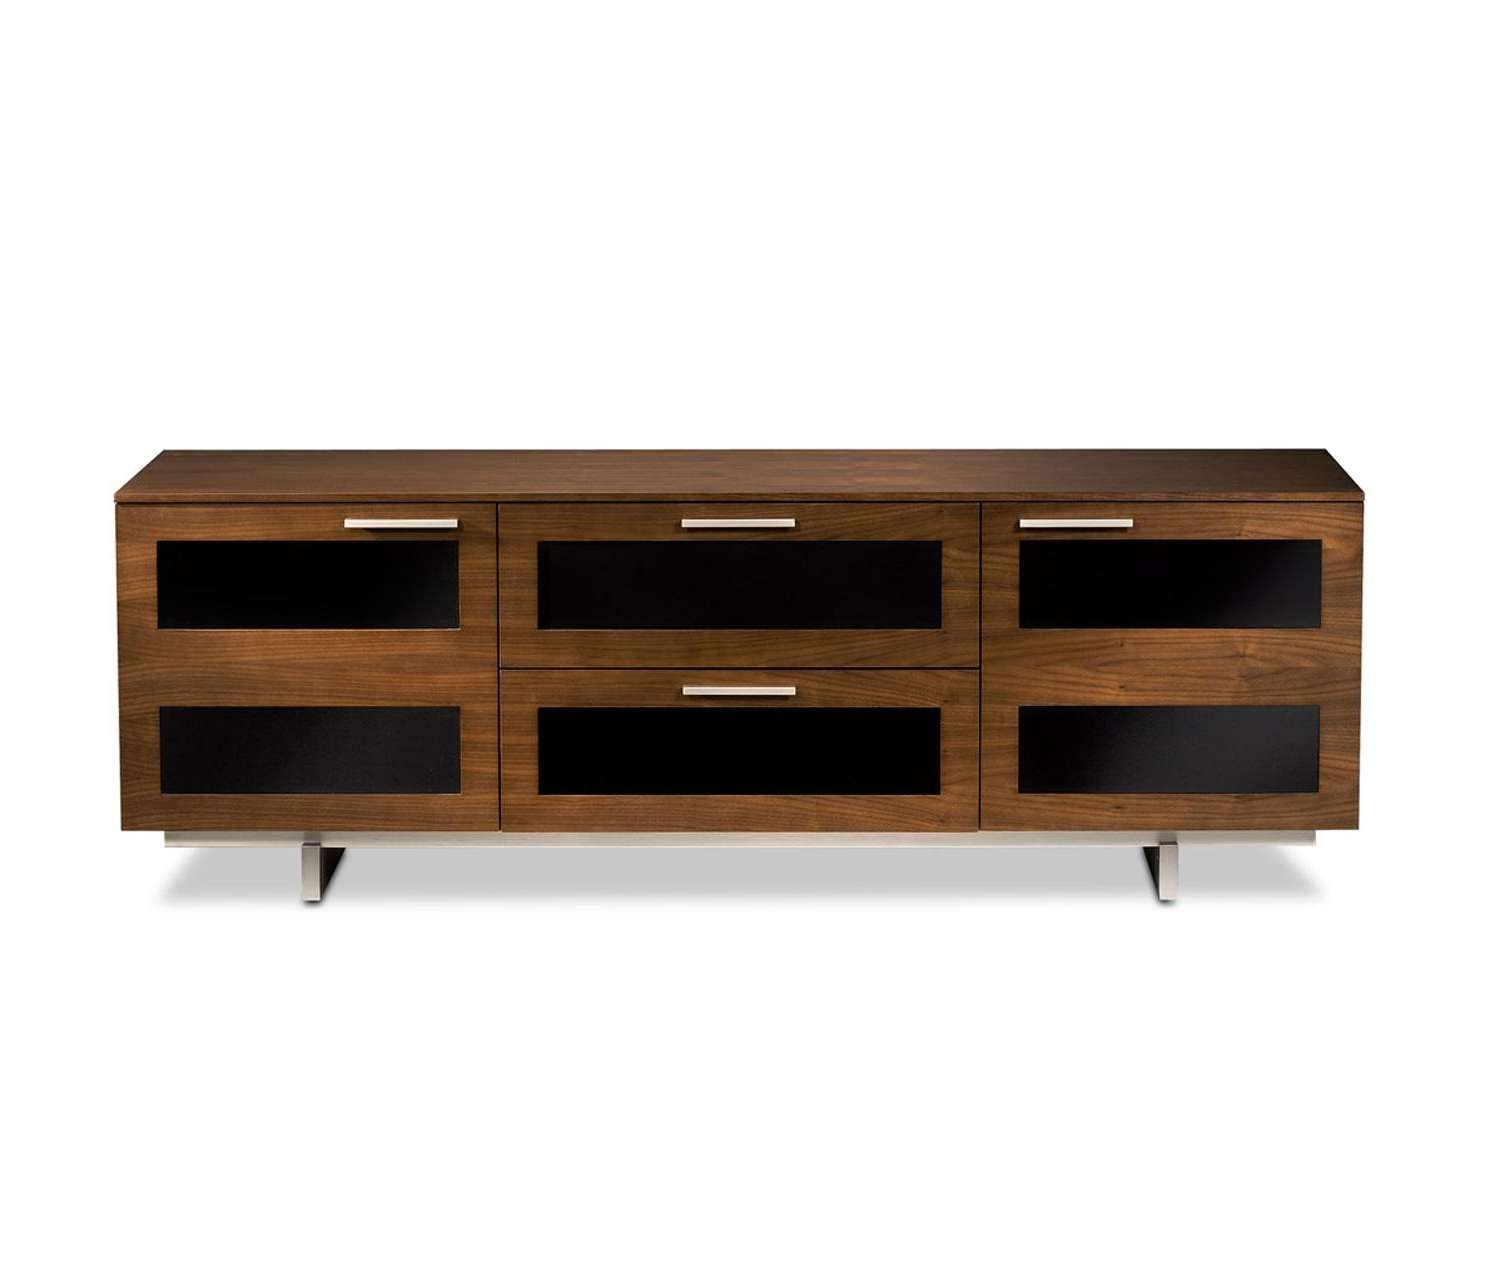 Bdi Avion 8927 | Av/tv Cabinet | Richer Sounds Intended For Richer Sounds Tv Stands (View 1 of 15)